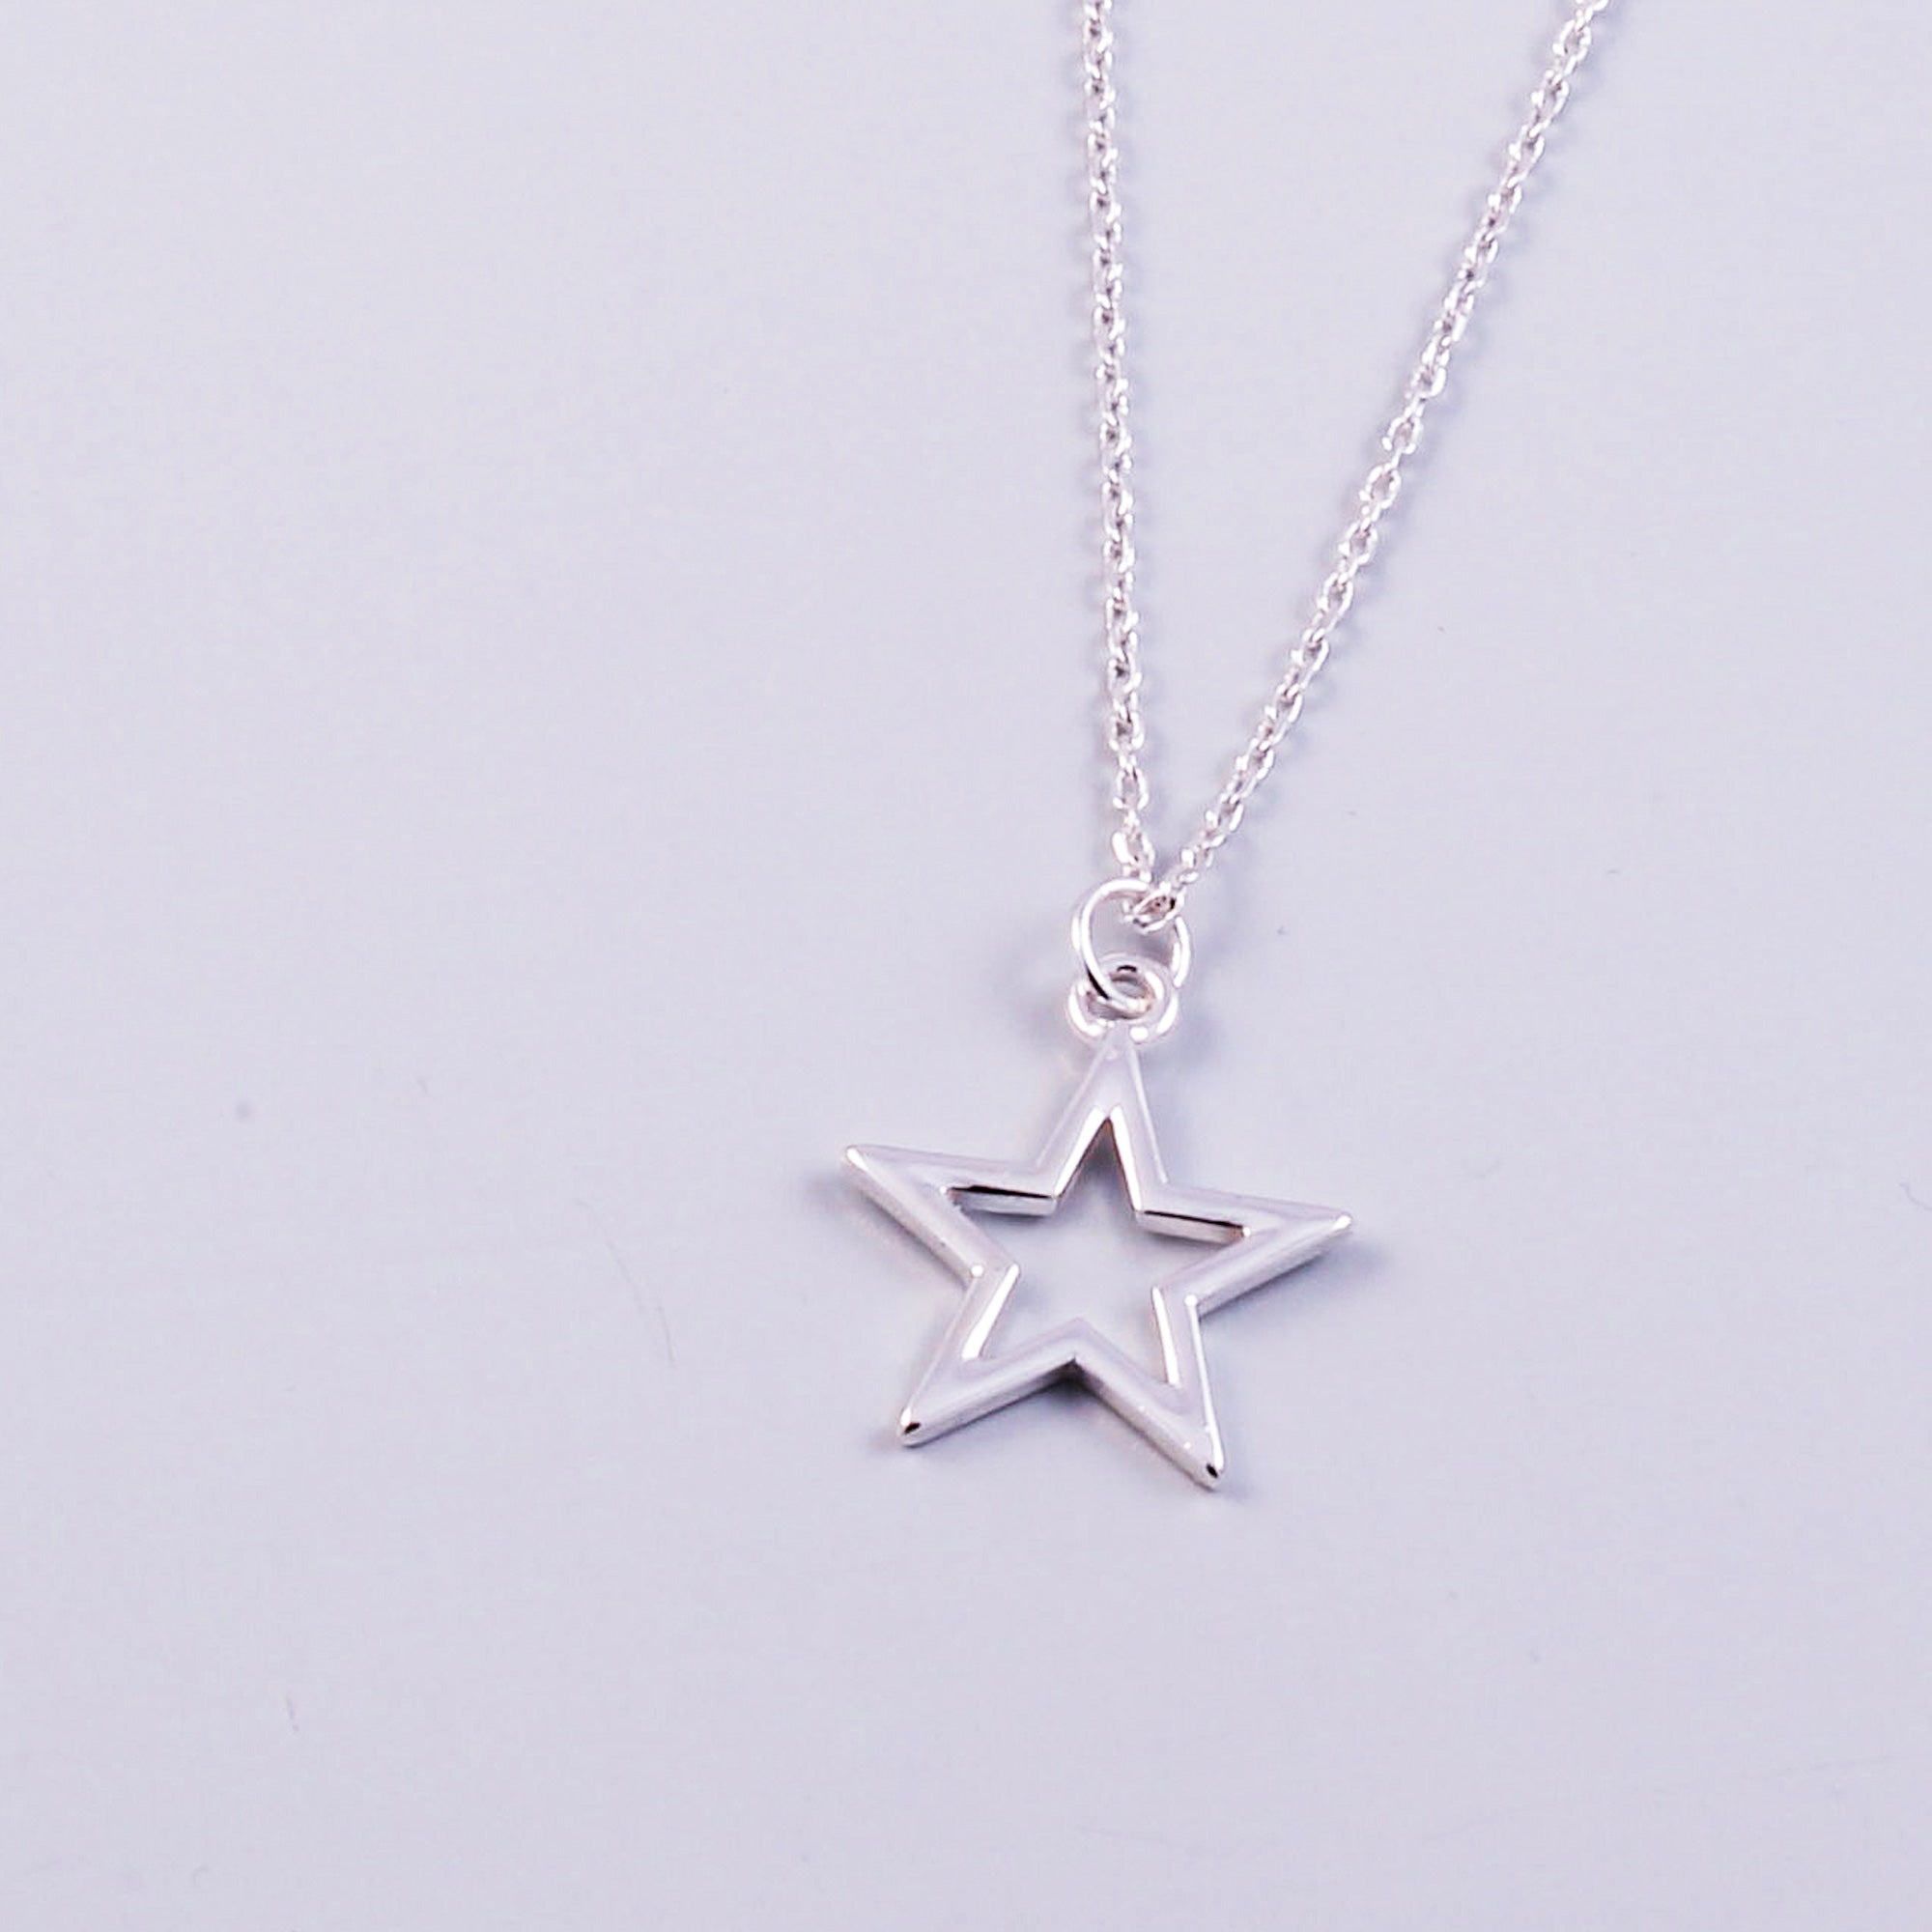 Silver Outline Star Necklace